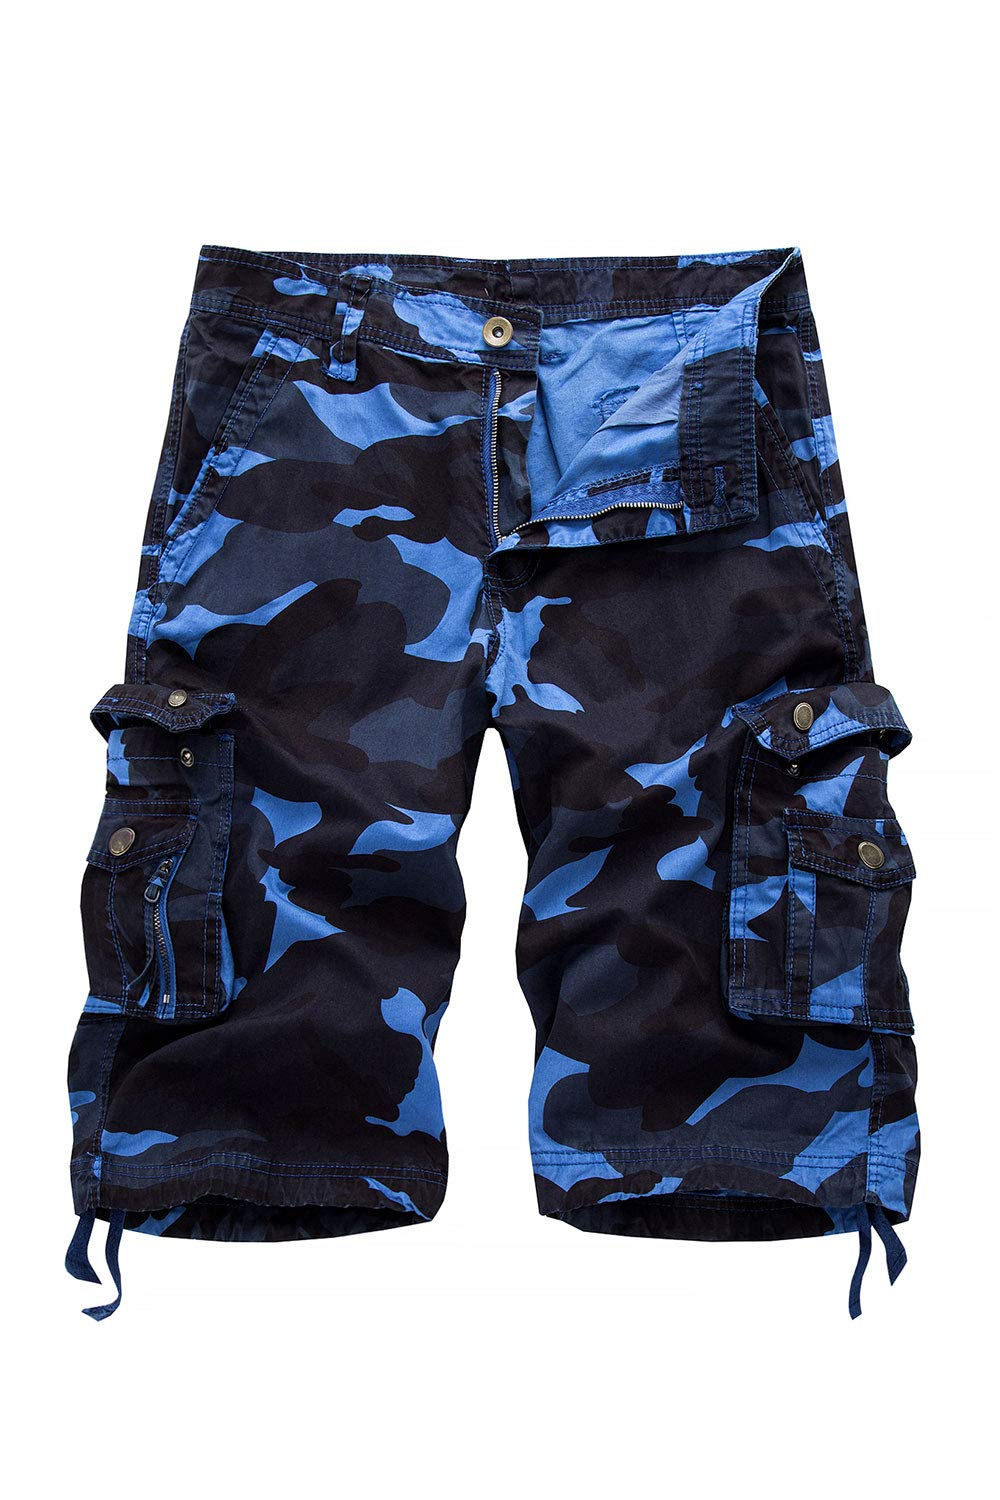 HSRKB Men's Belted Cargo Short Work Shorts for Men (Blue Camouflage, 38) by HSRKB